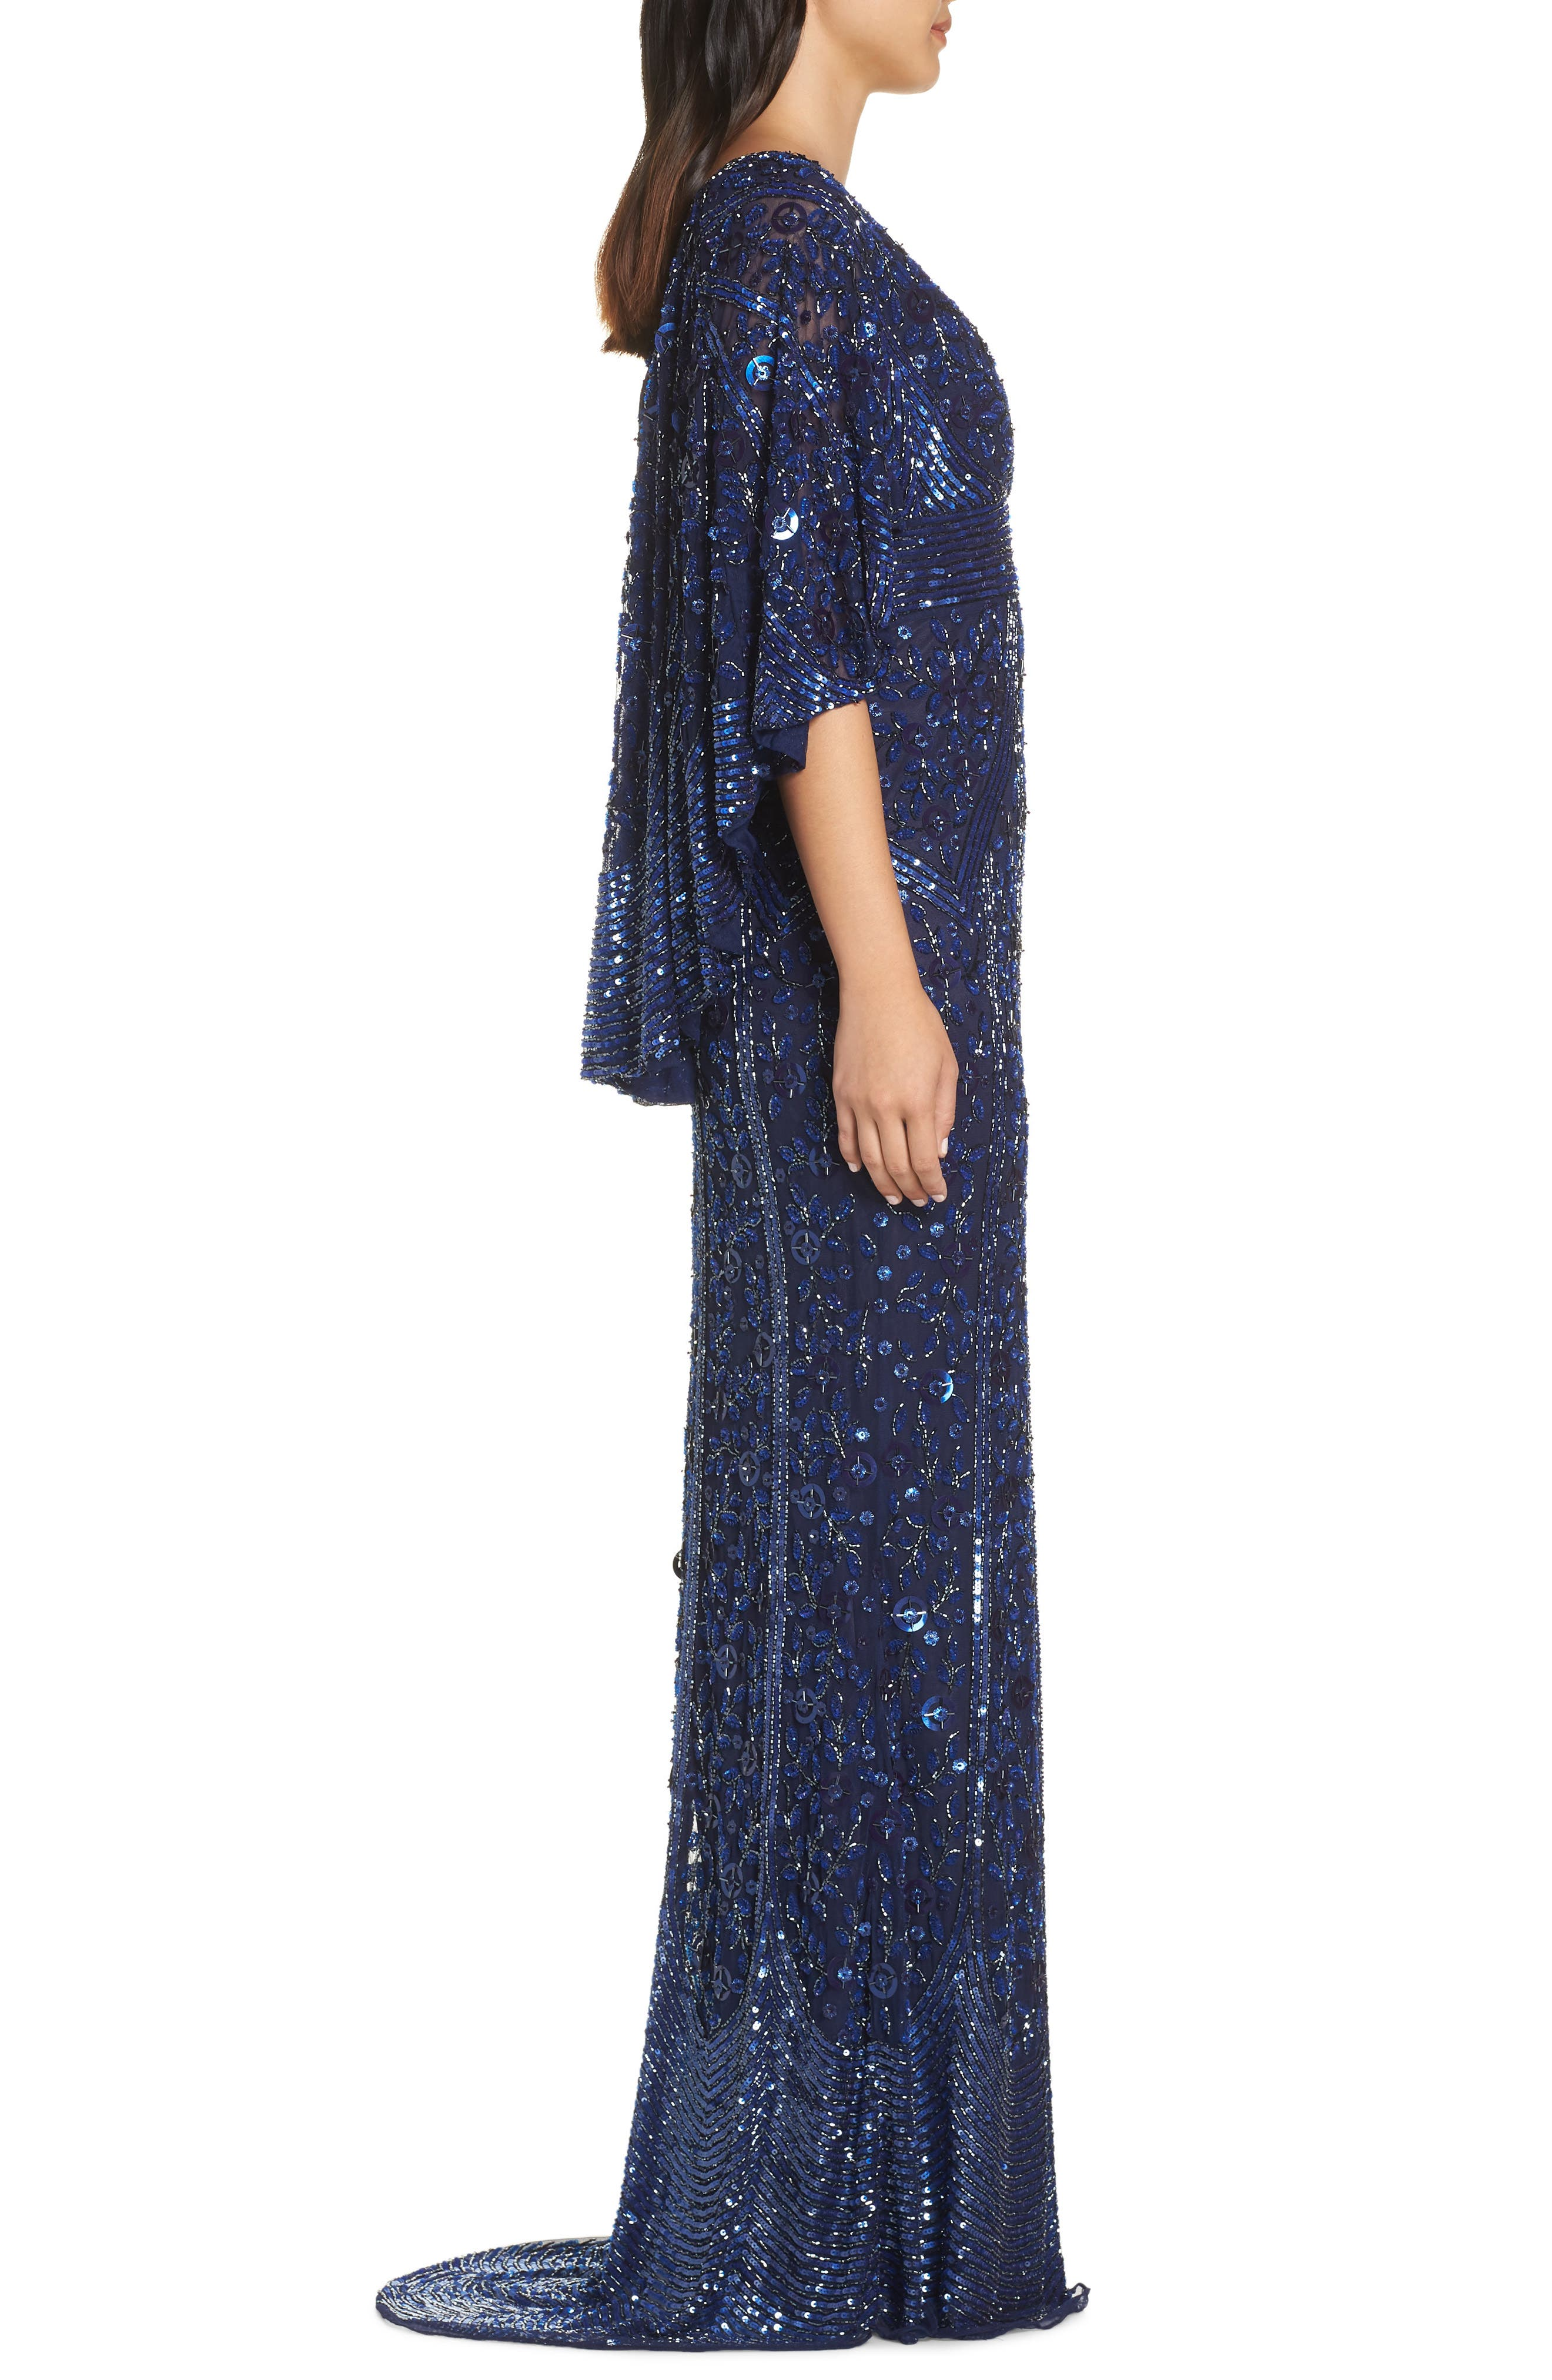 MAC DUGGAL, Sequin Cape Sleeve Evening Dress, Alternate thumbnail 4, color, MIDNIGHT